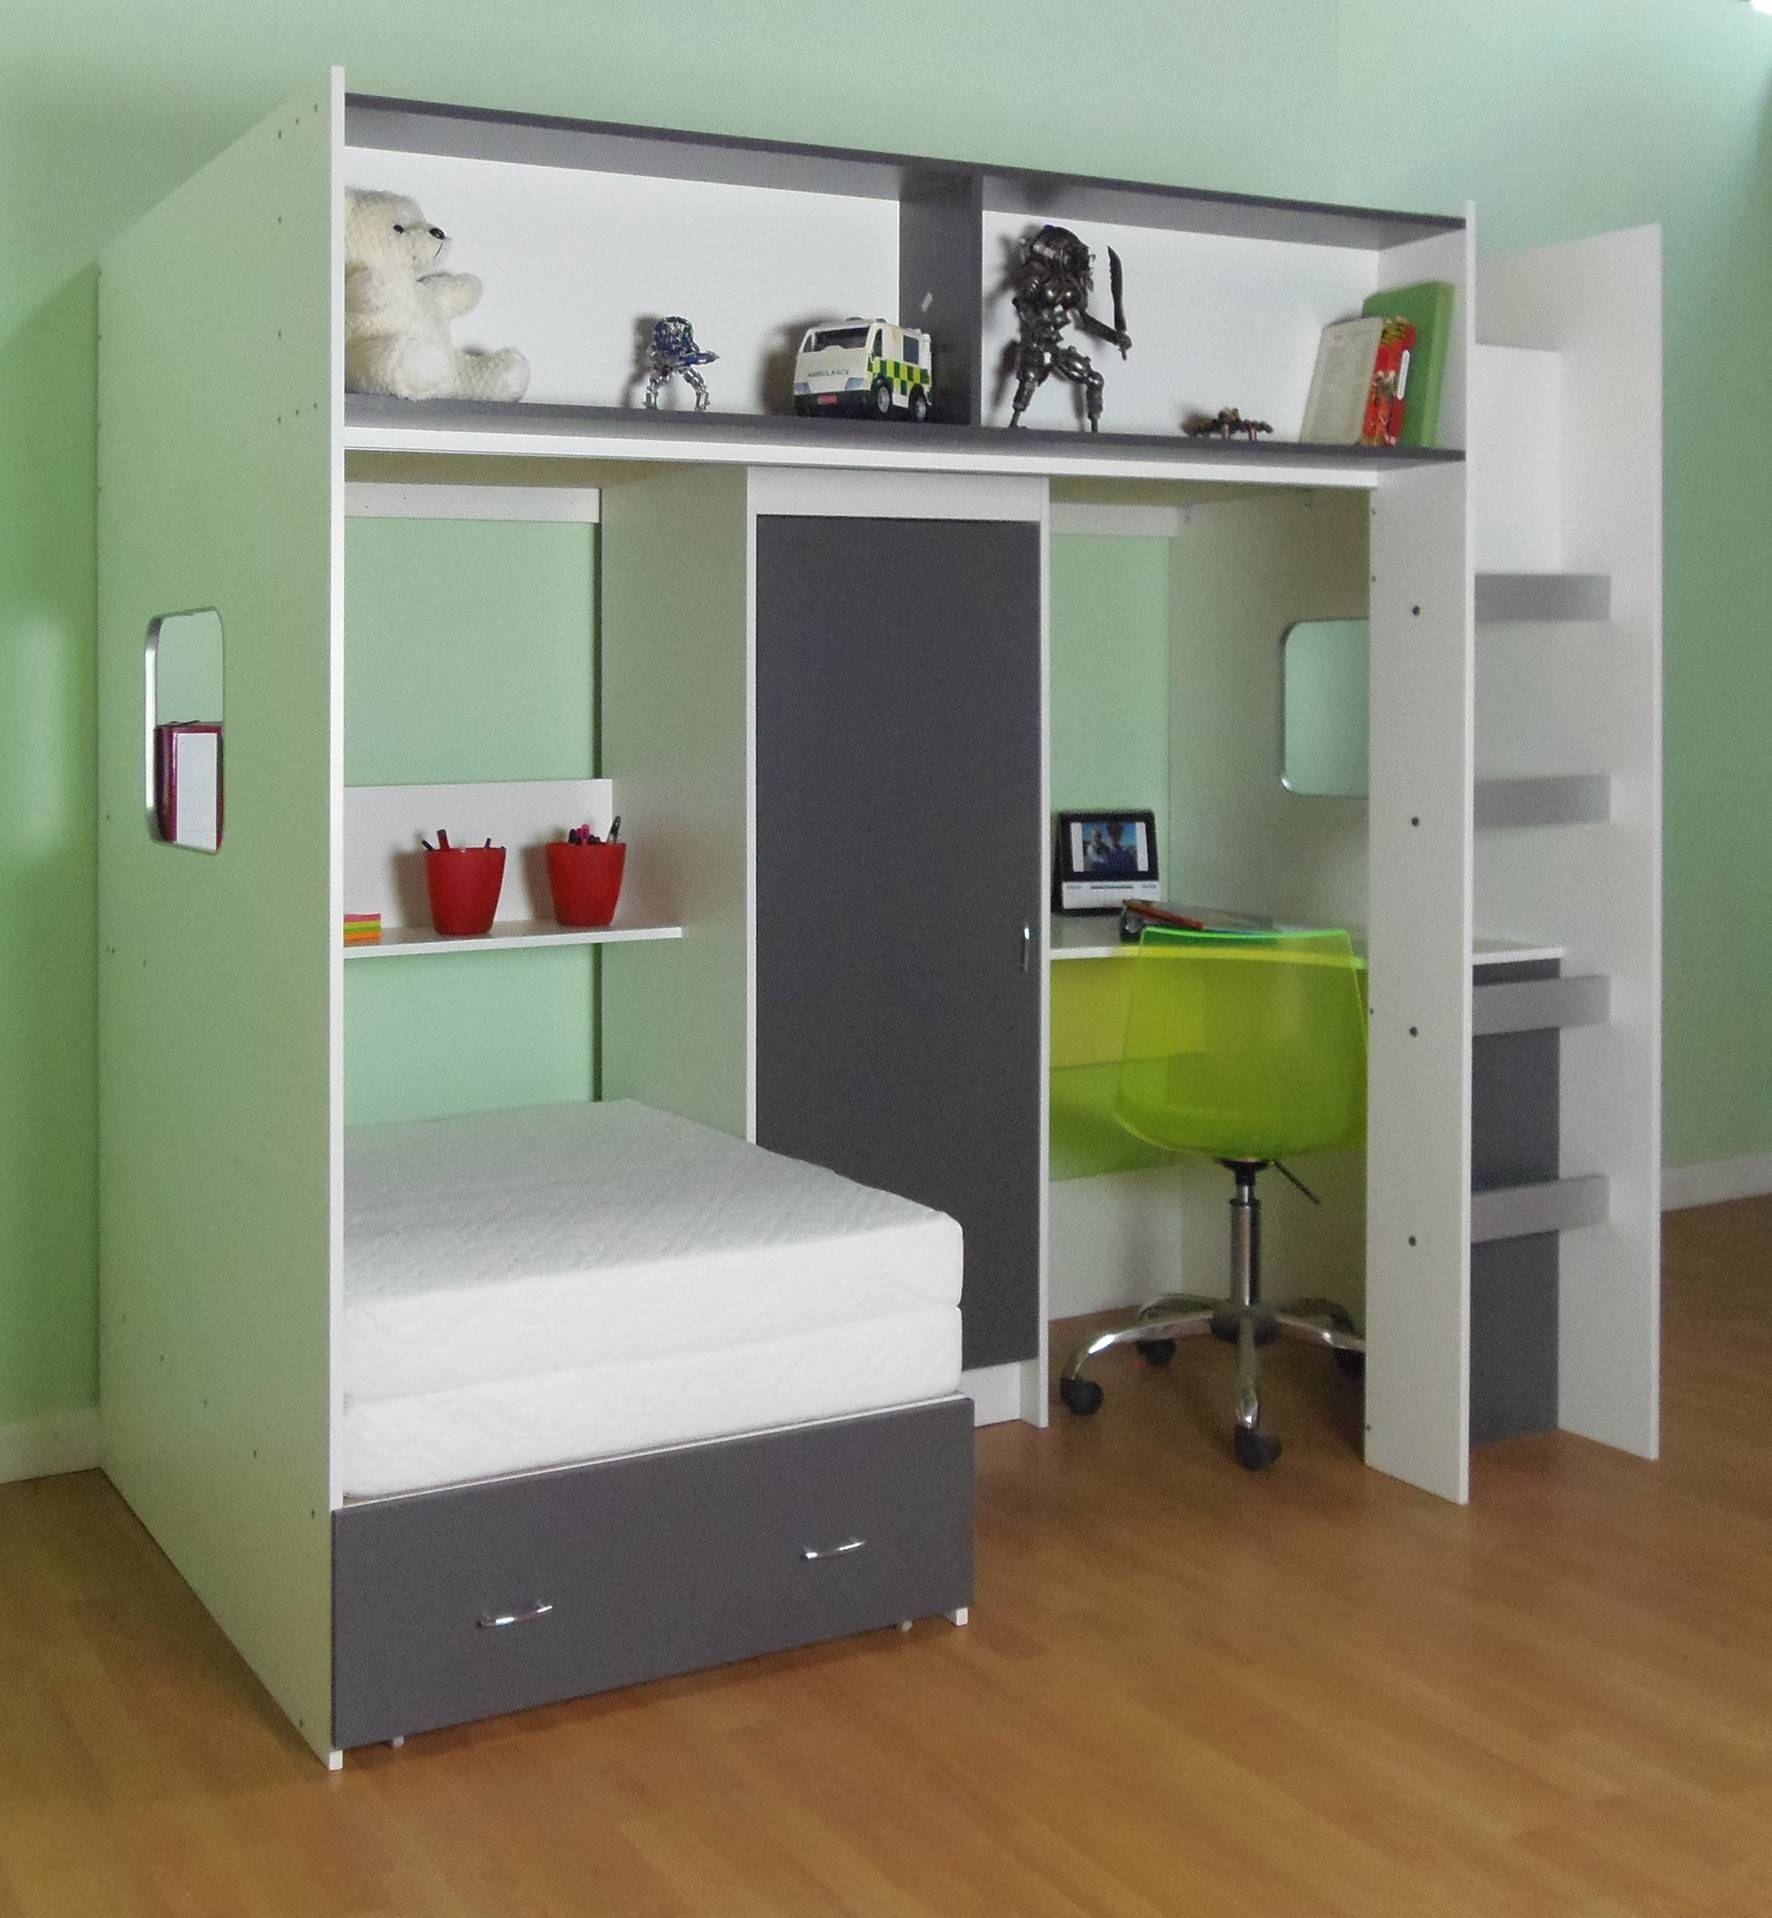 Modern Cabin Bed For Boys With Wardrobe Cupboard And Writing Desk within Kids Cabin Beds With Wardrobes (Image 13 of 15)